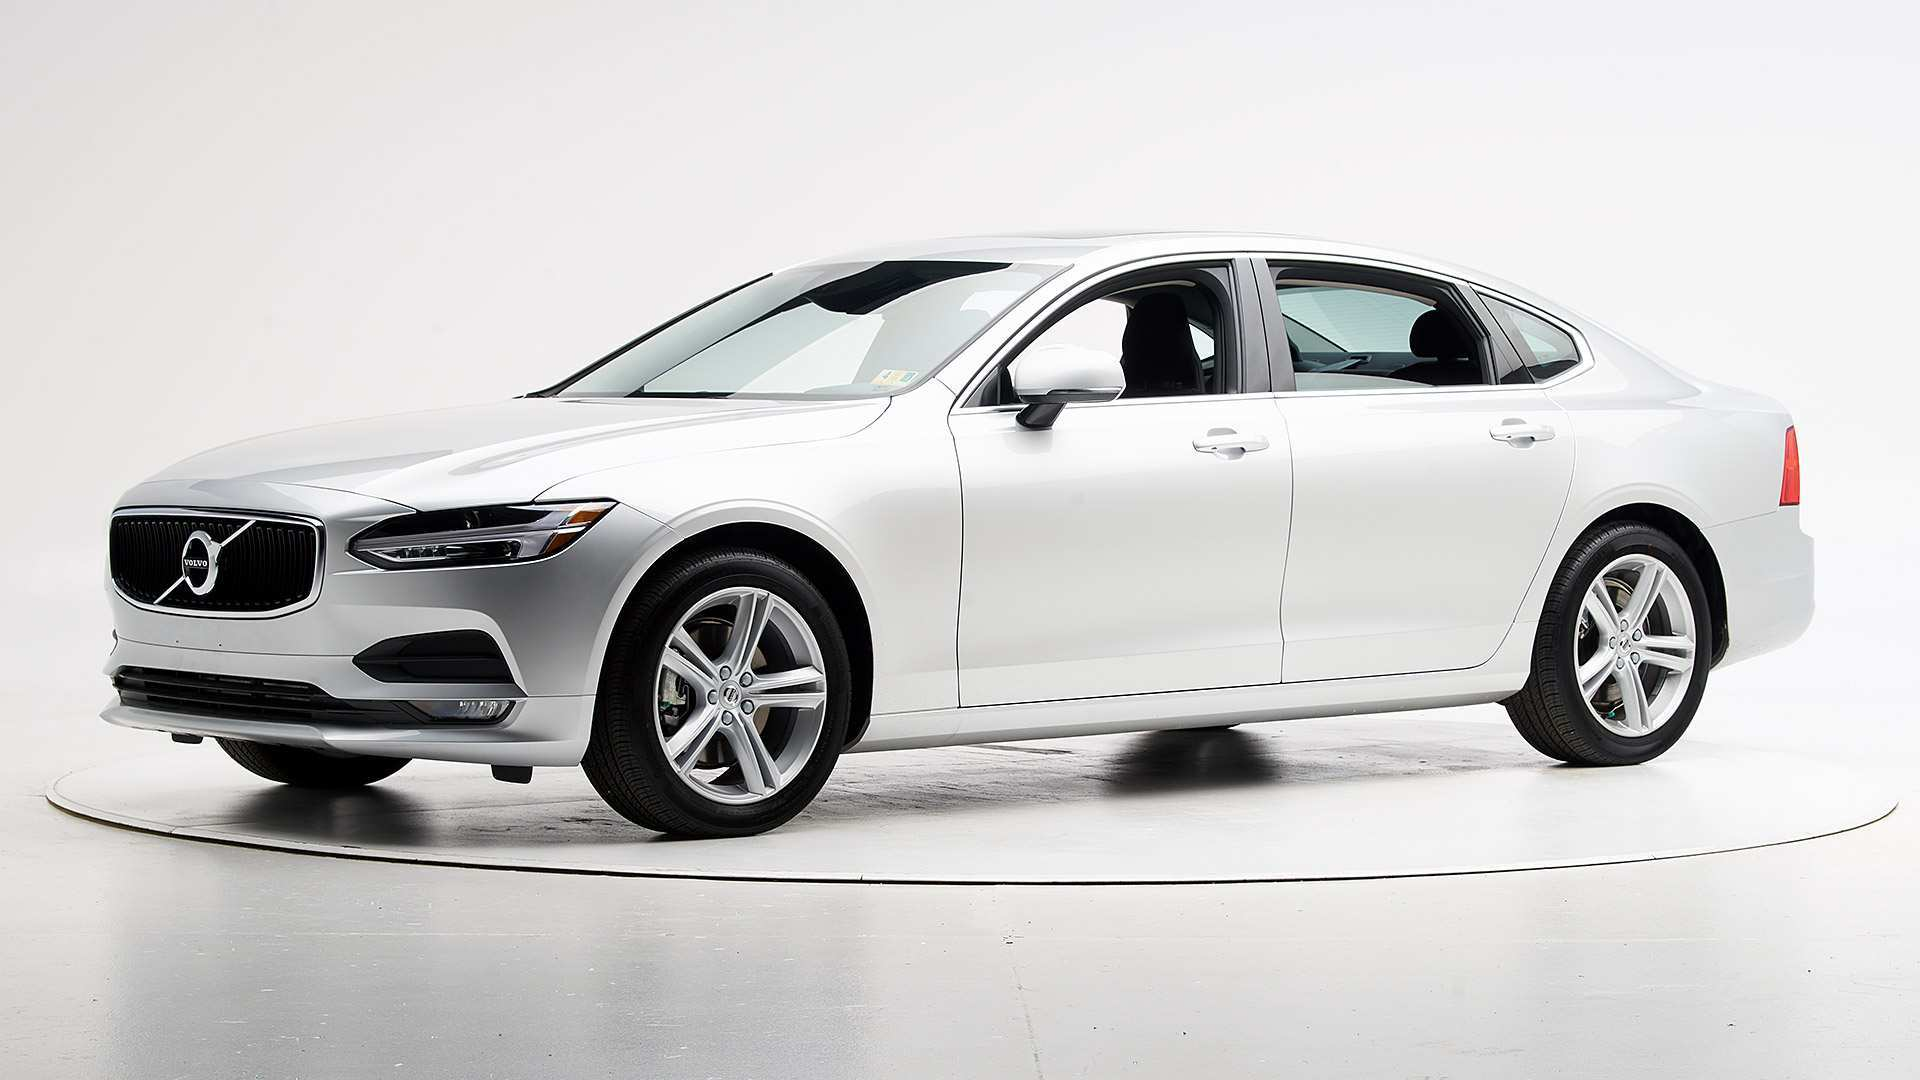 45 All New S90 Volvo 2019 Price And Review